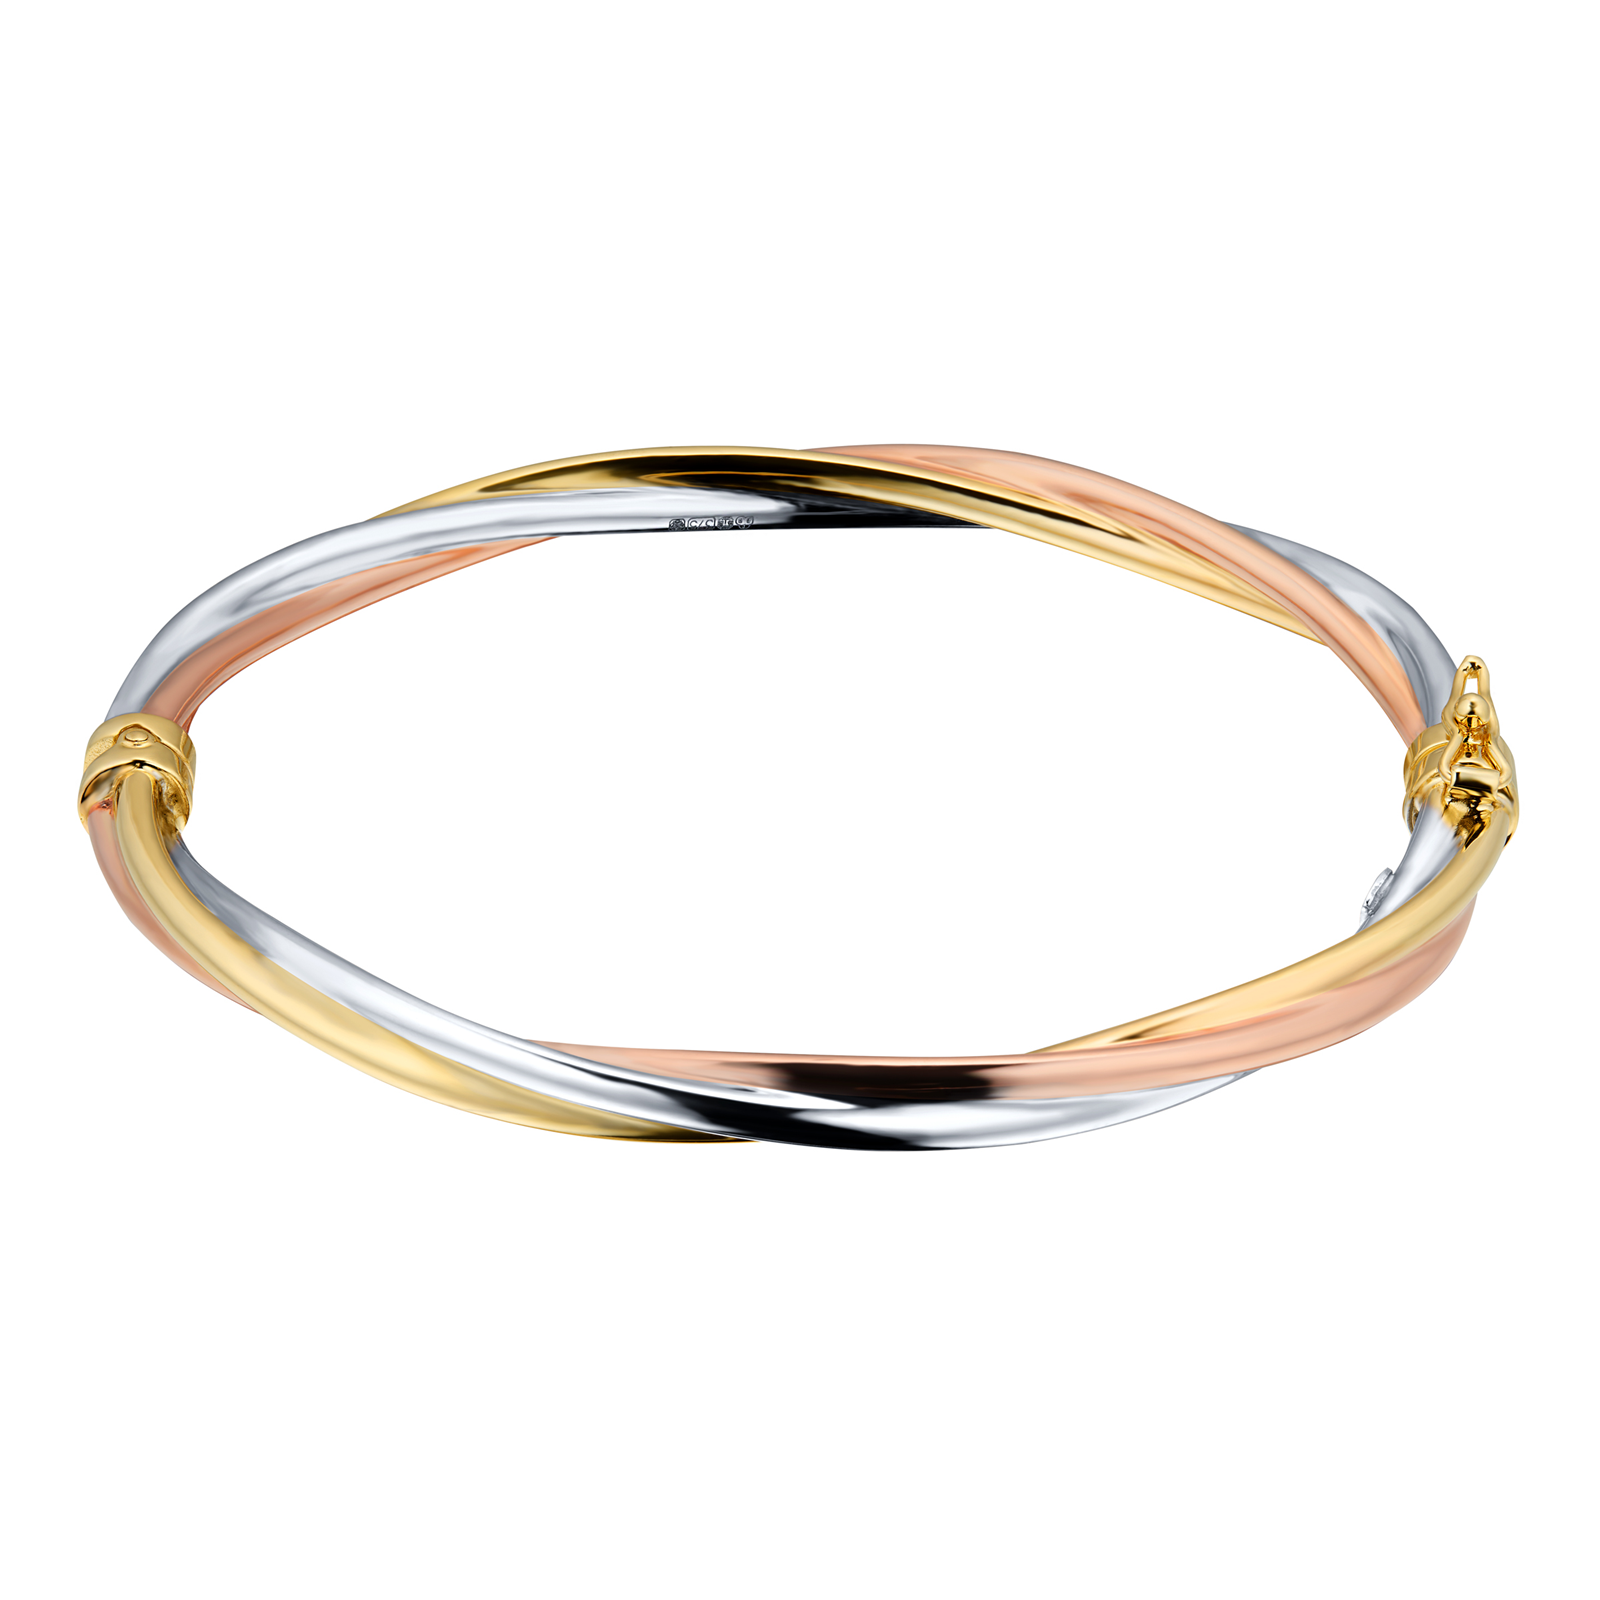 jewelry bracelet diamond bangle products bangles nail mizana collections gold rose single